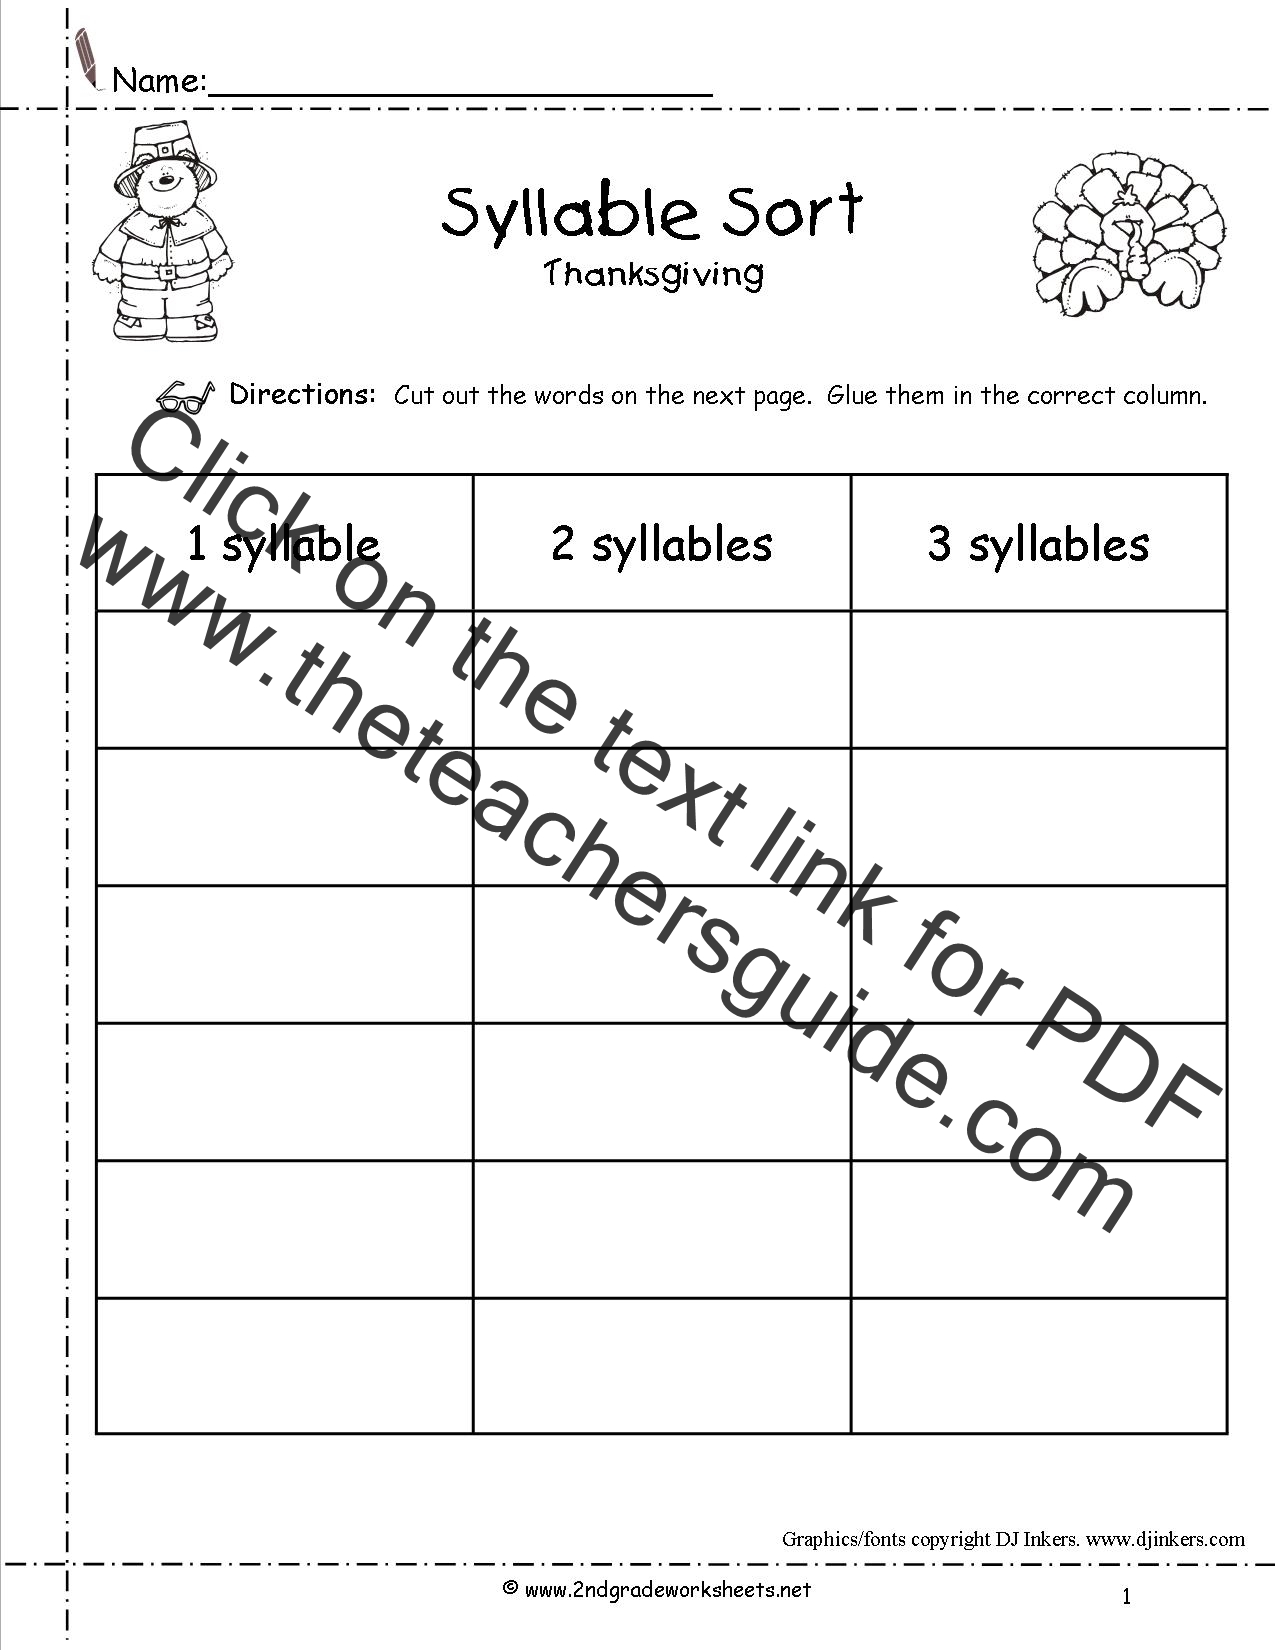 worksheet And Worksheets thanksgiving printouts and worksheets syllable sort worksheet